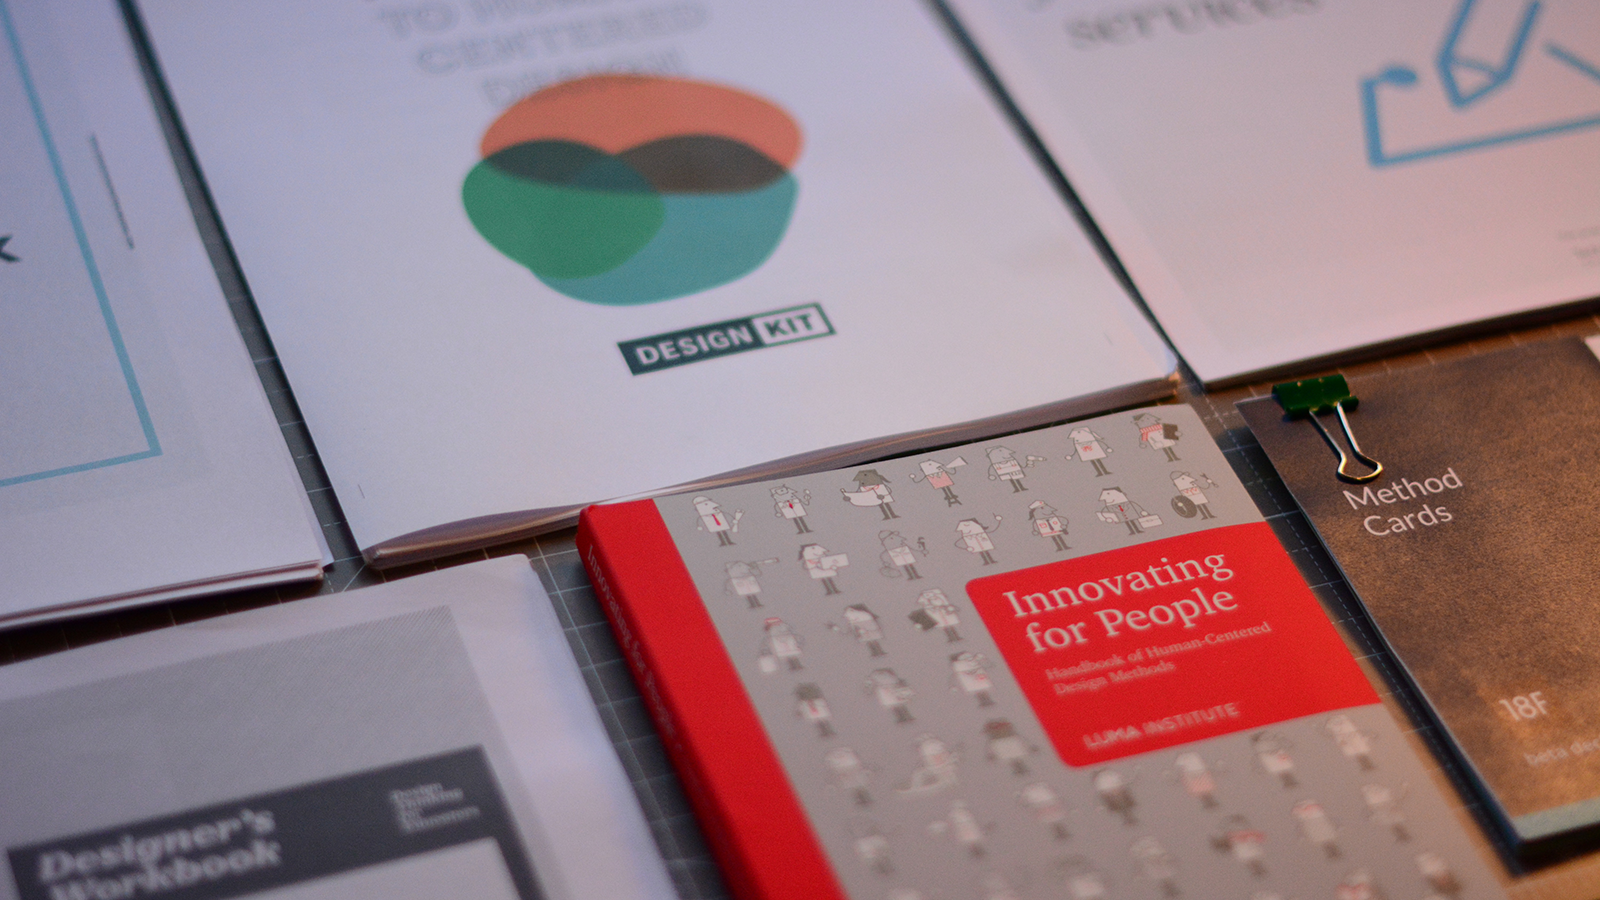 Useful methods, guides and tools for doing human-centred design